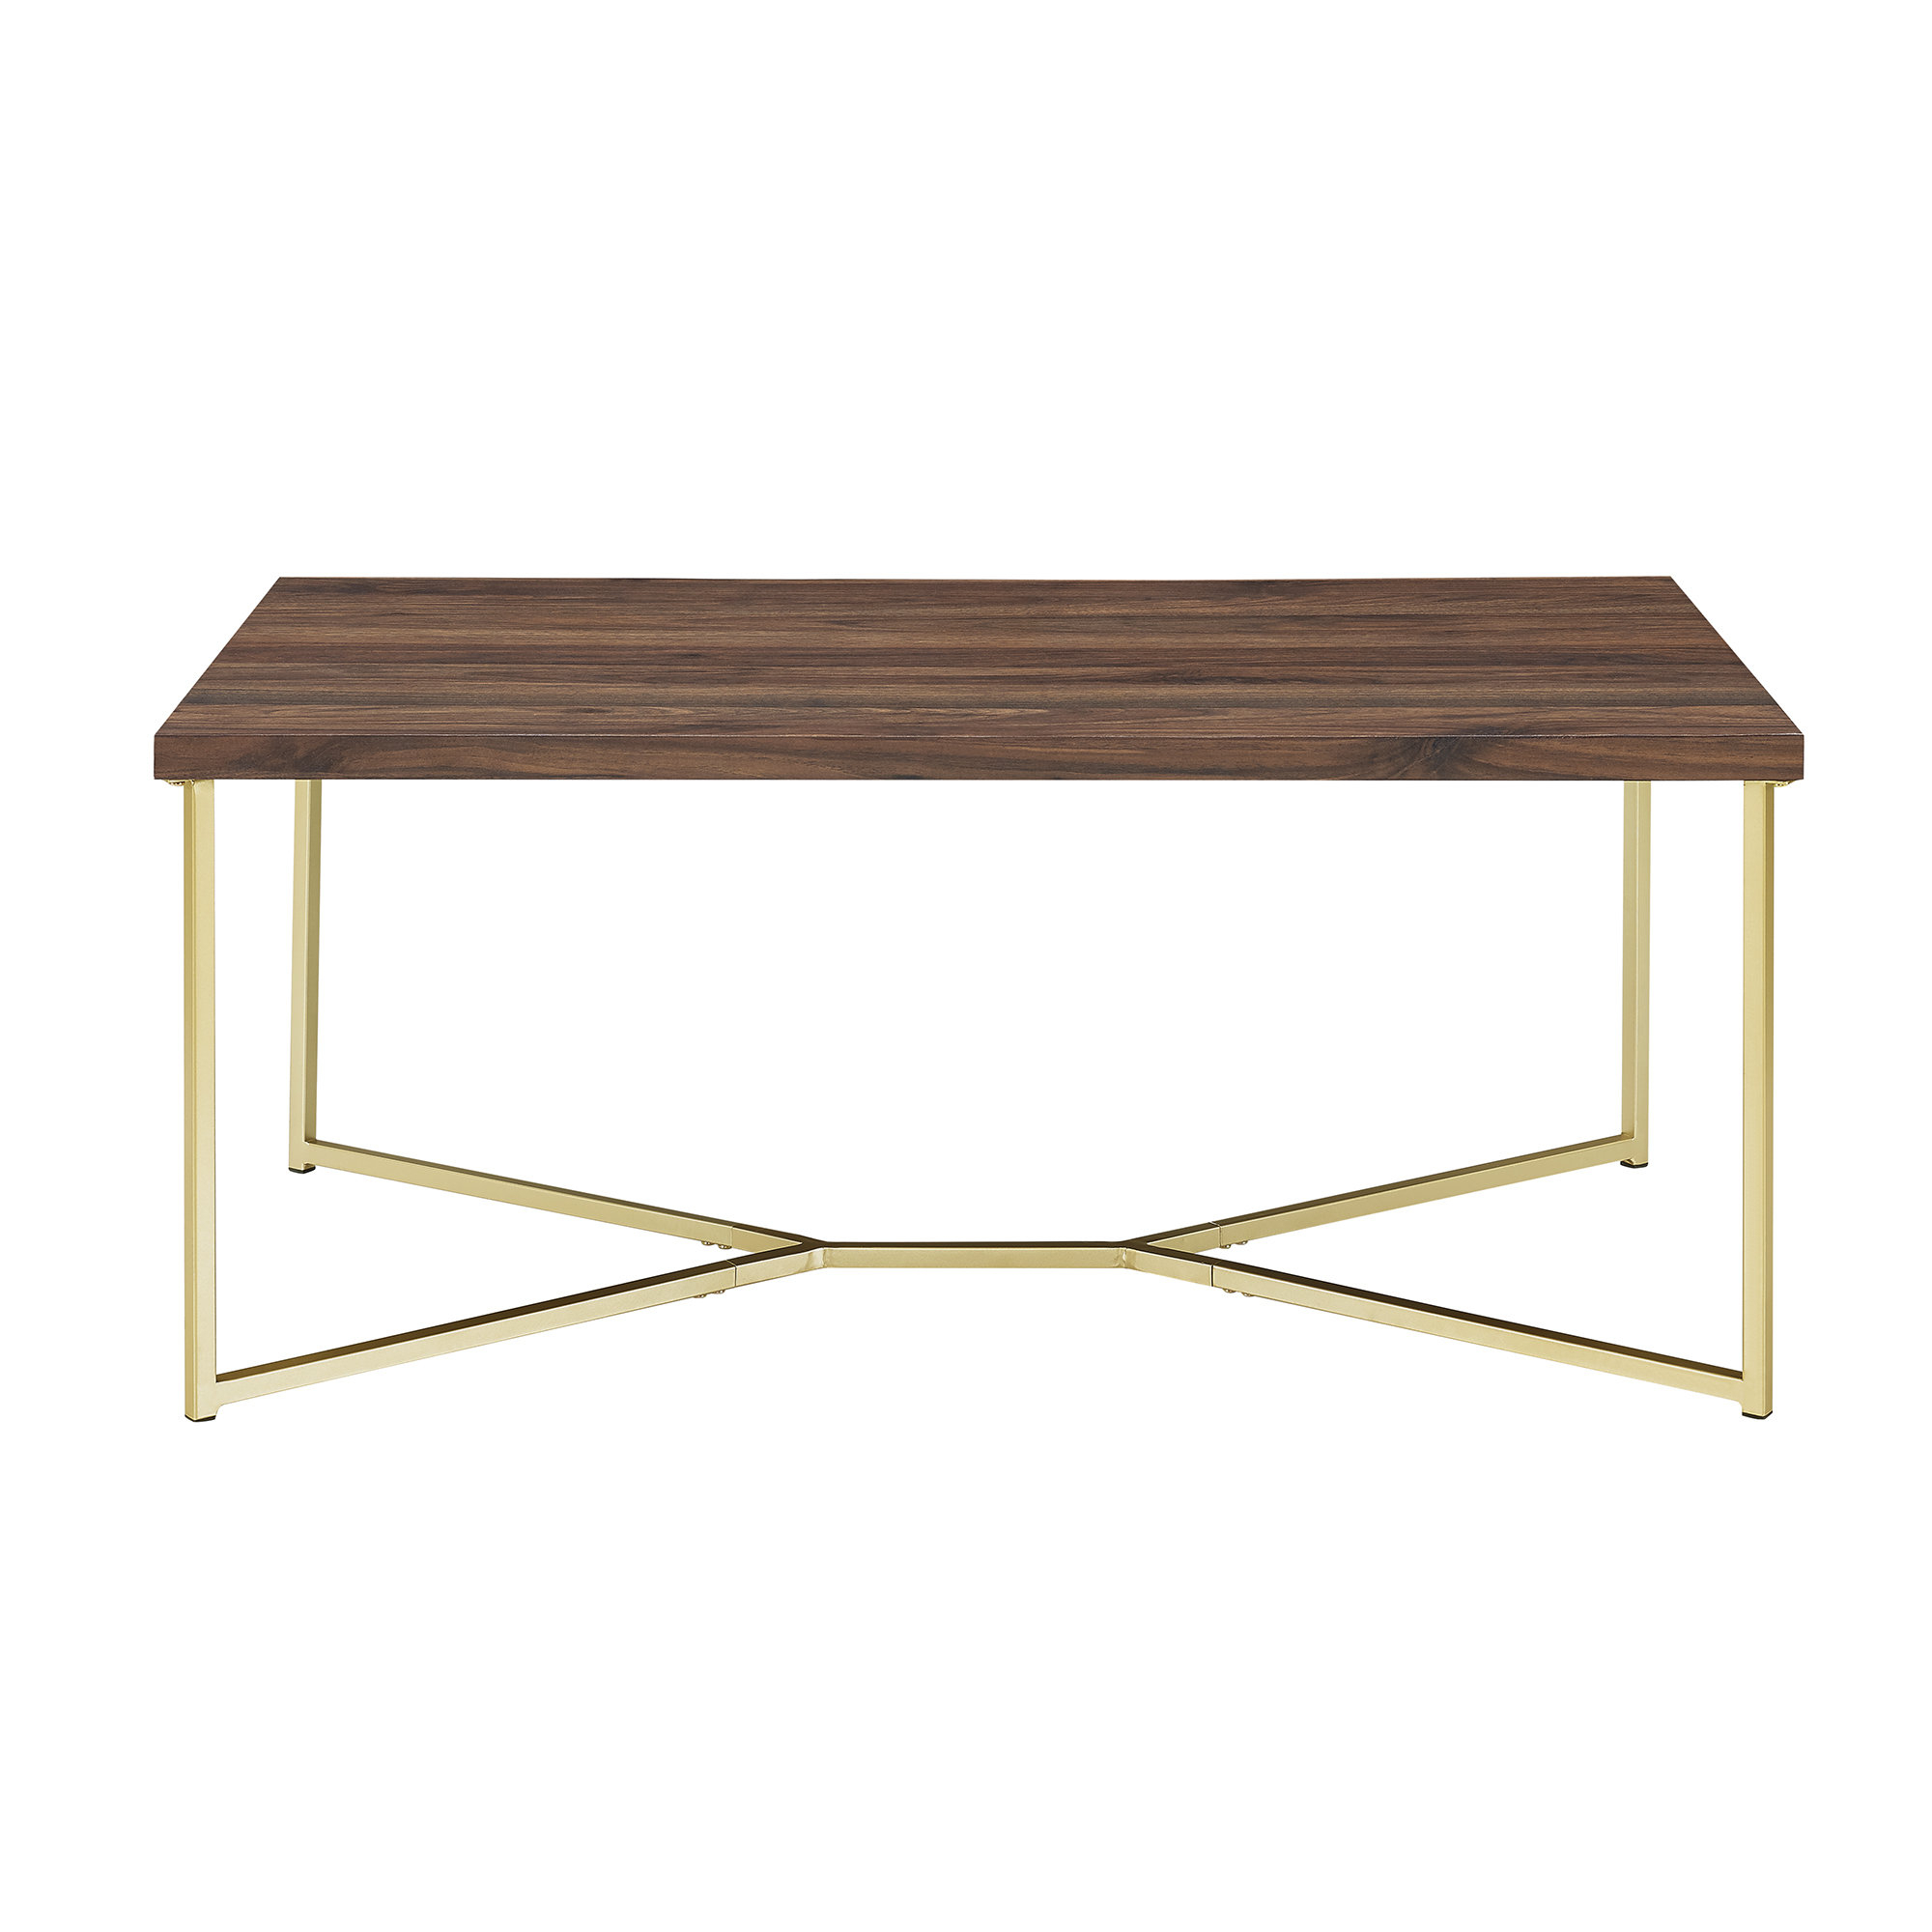 Orren Ellis | Allmodern Pertaining To Layered Wood Small Square Console Tables (View 11 of 30)